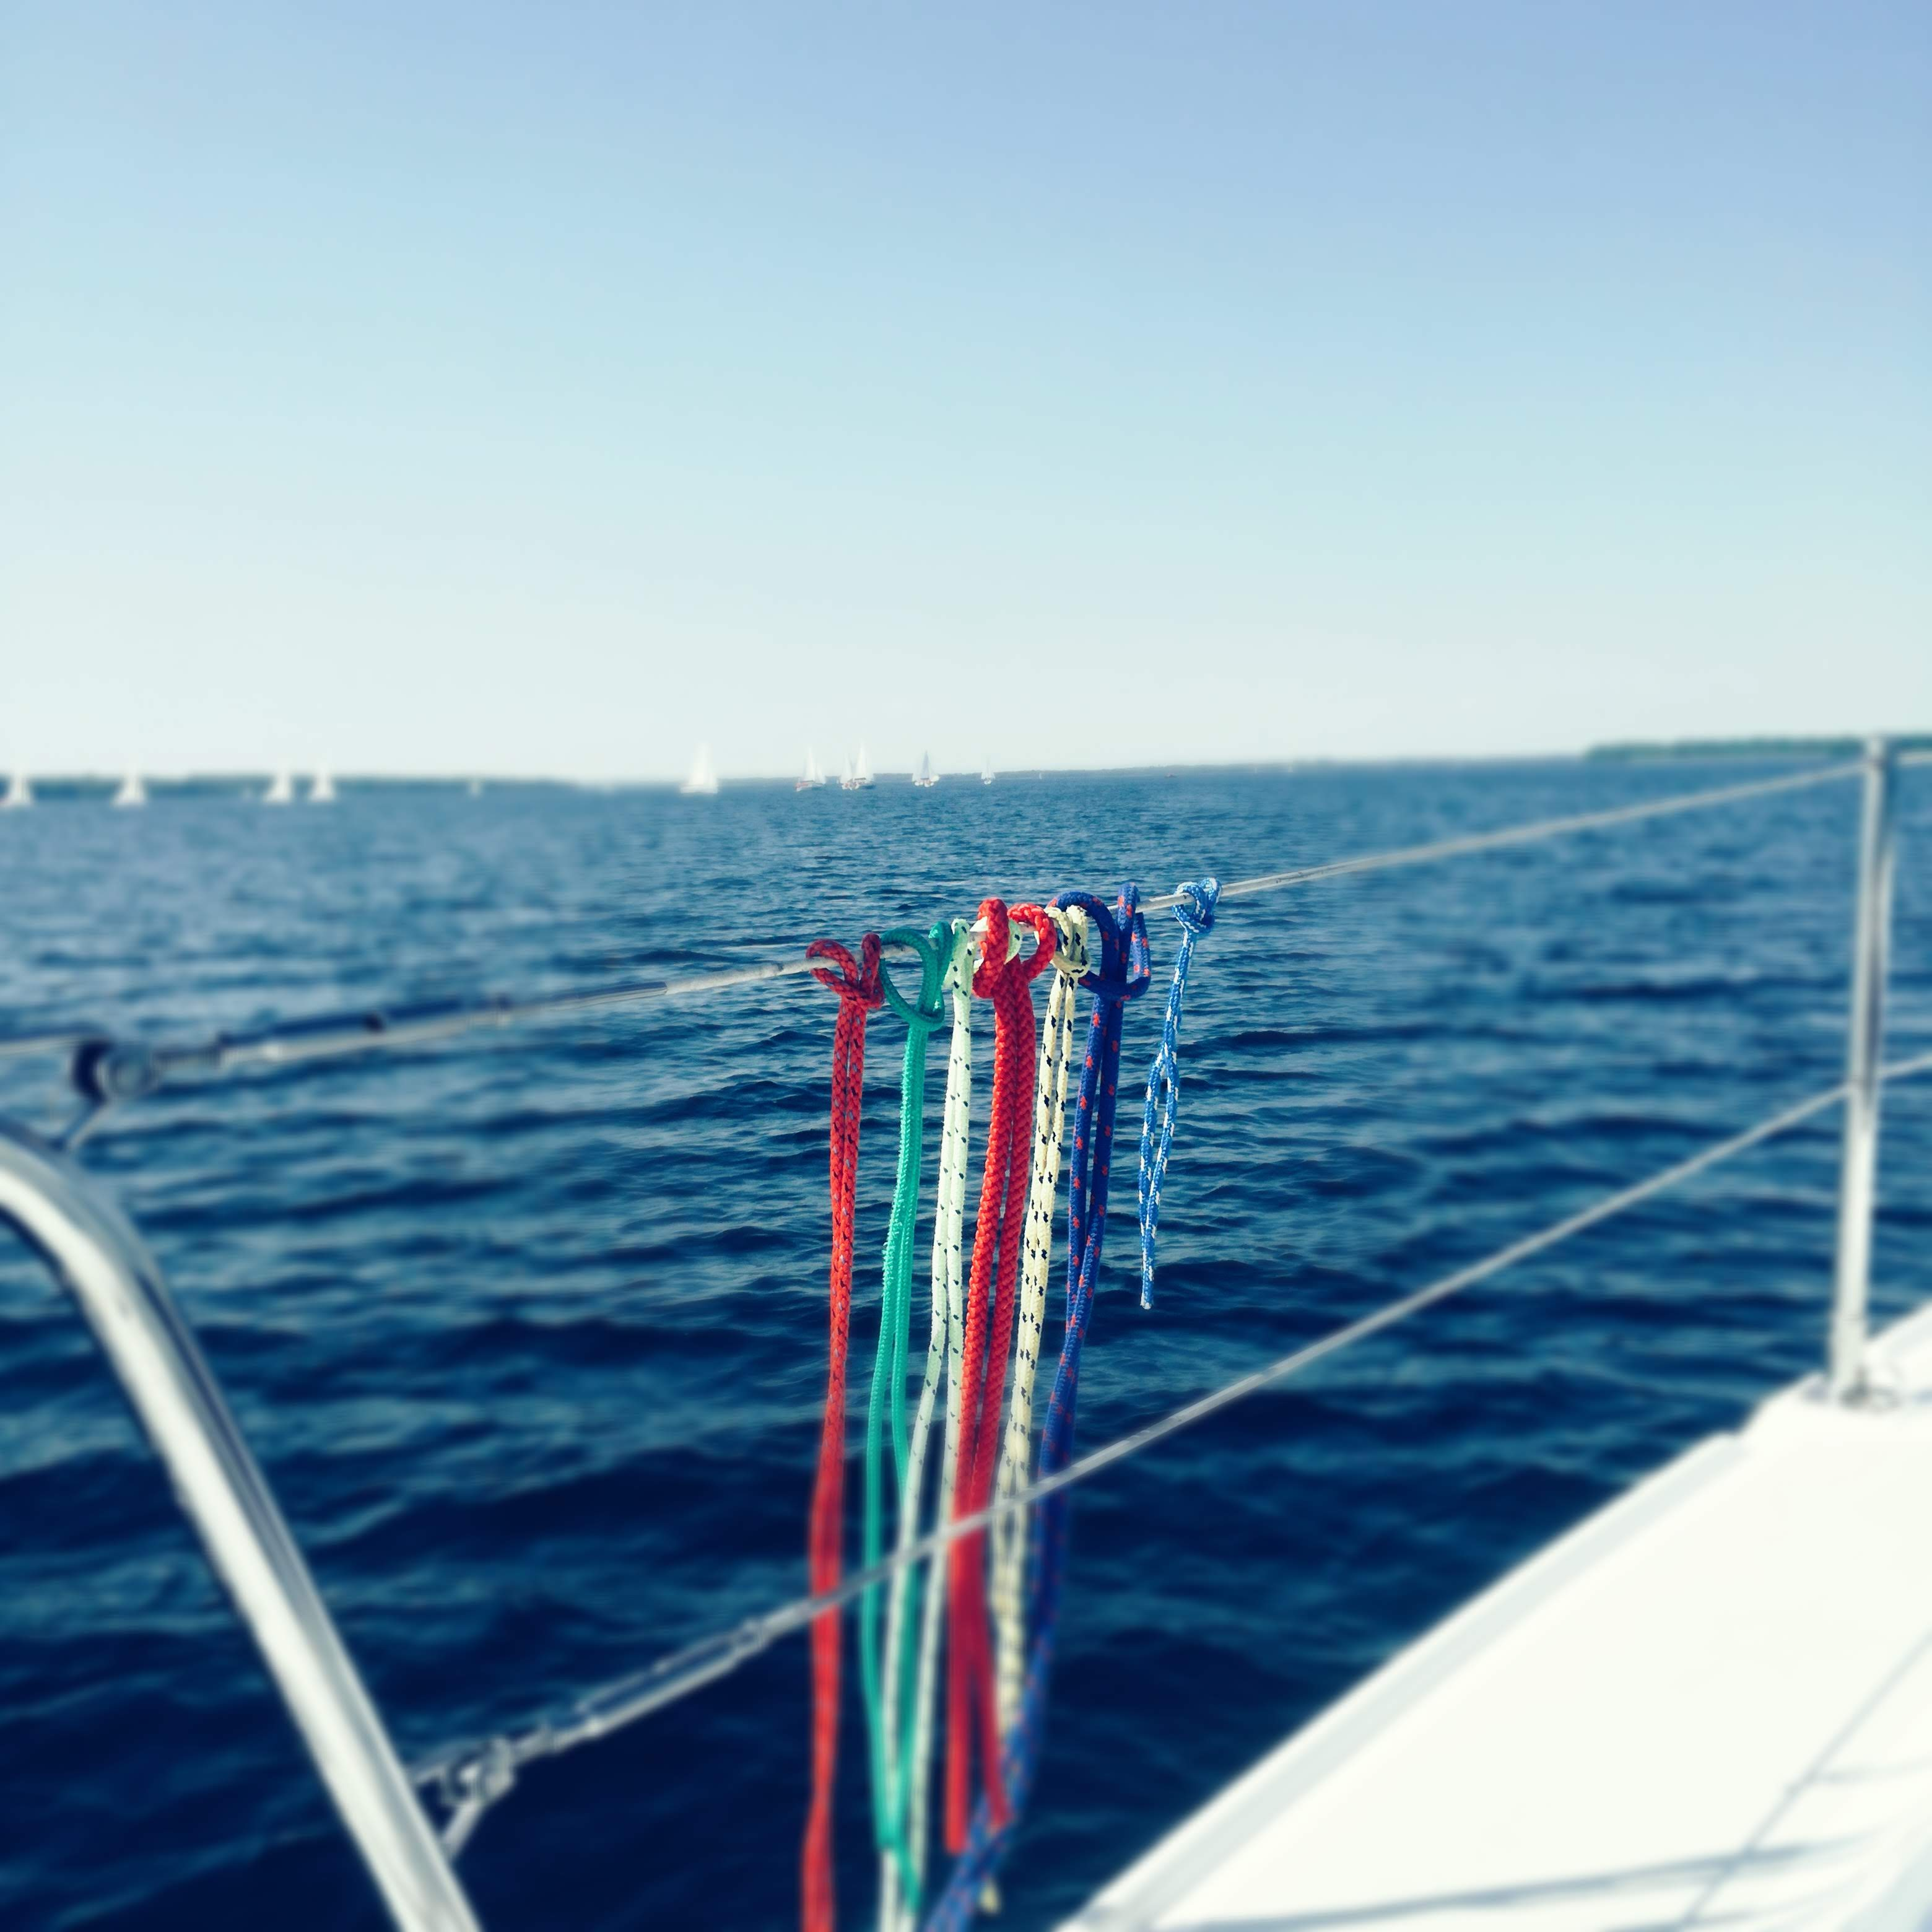 nautical knots how tosailing cruising tamed winds blog post 10 things every woman should learn before moving aboard (plus bonus Dad's coffee recipe)